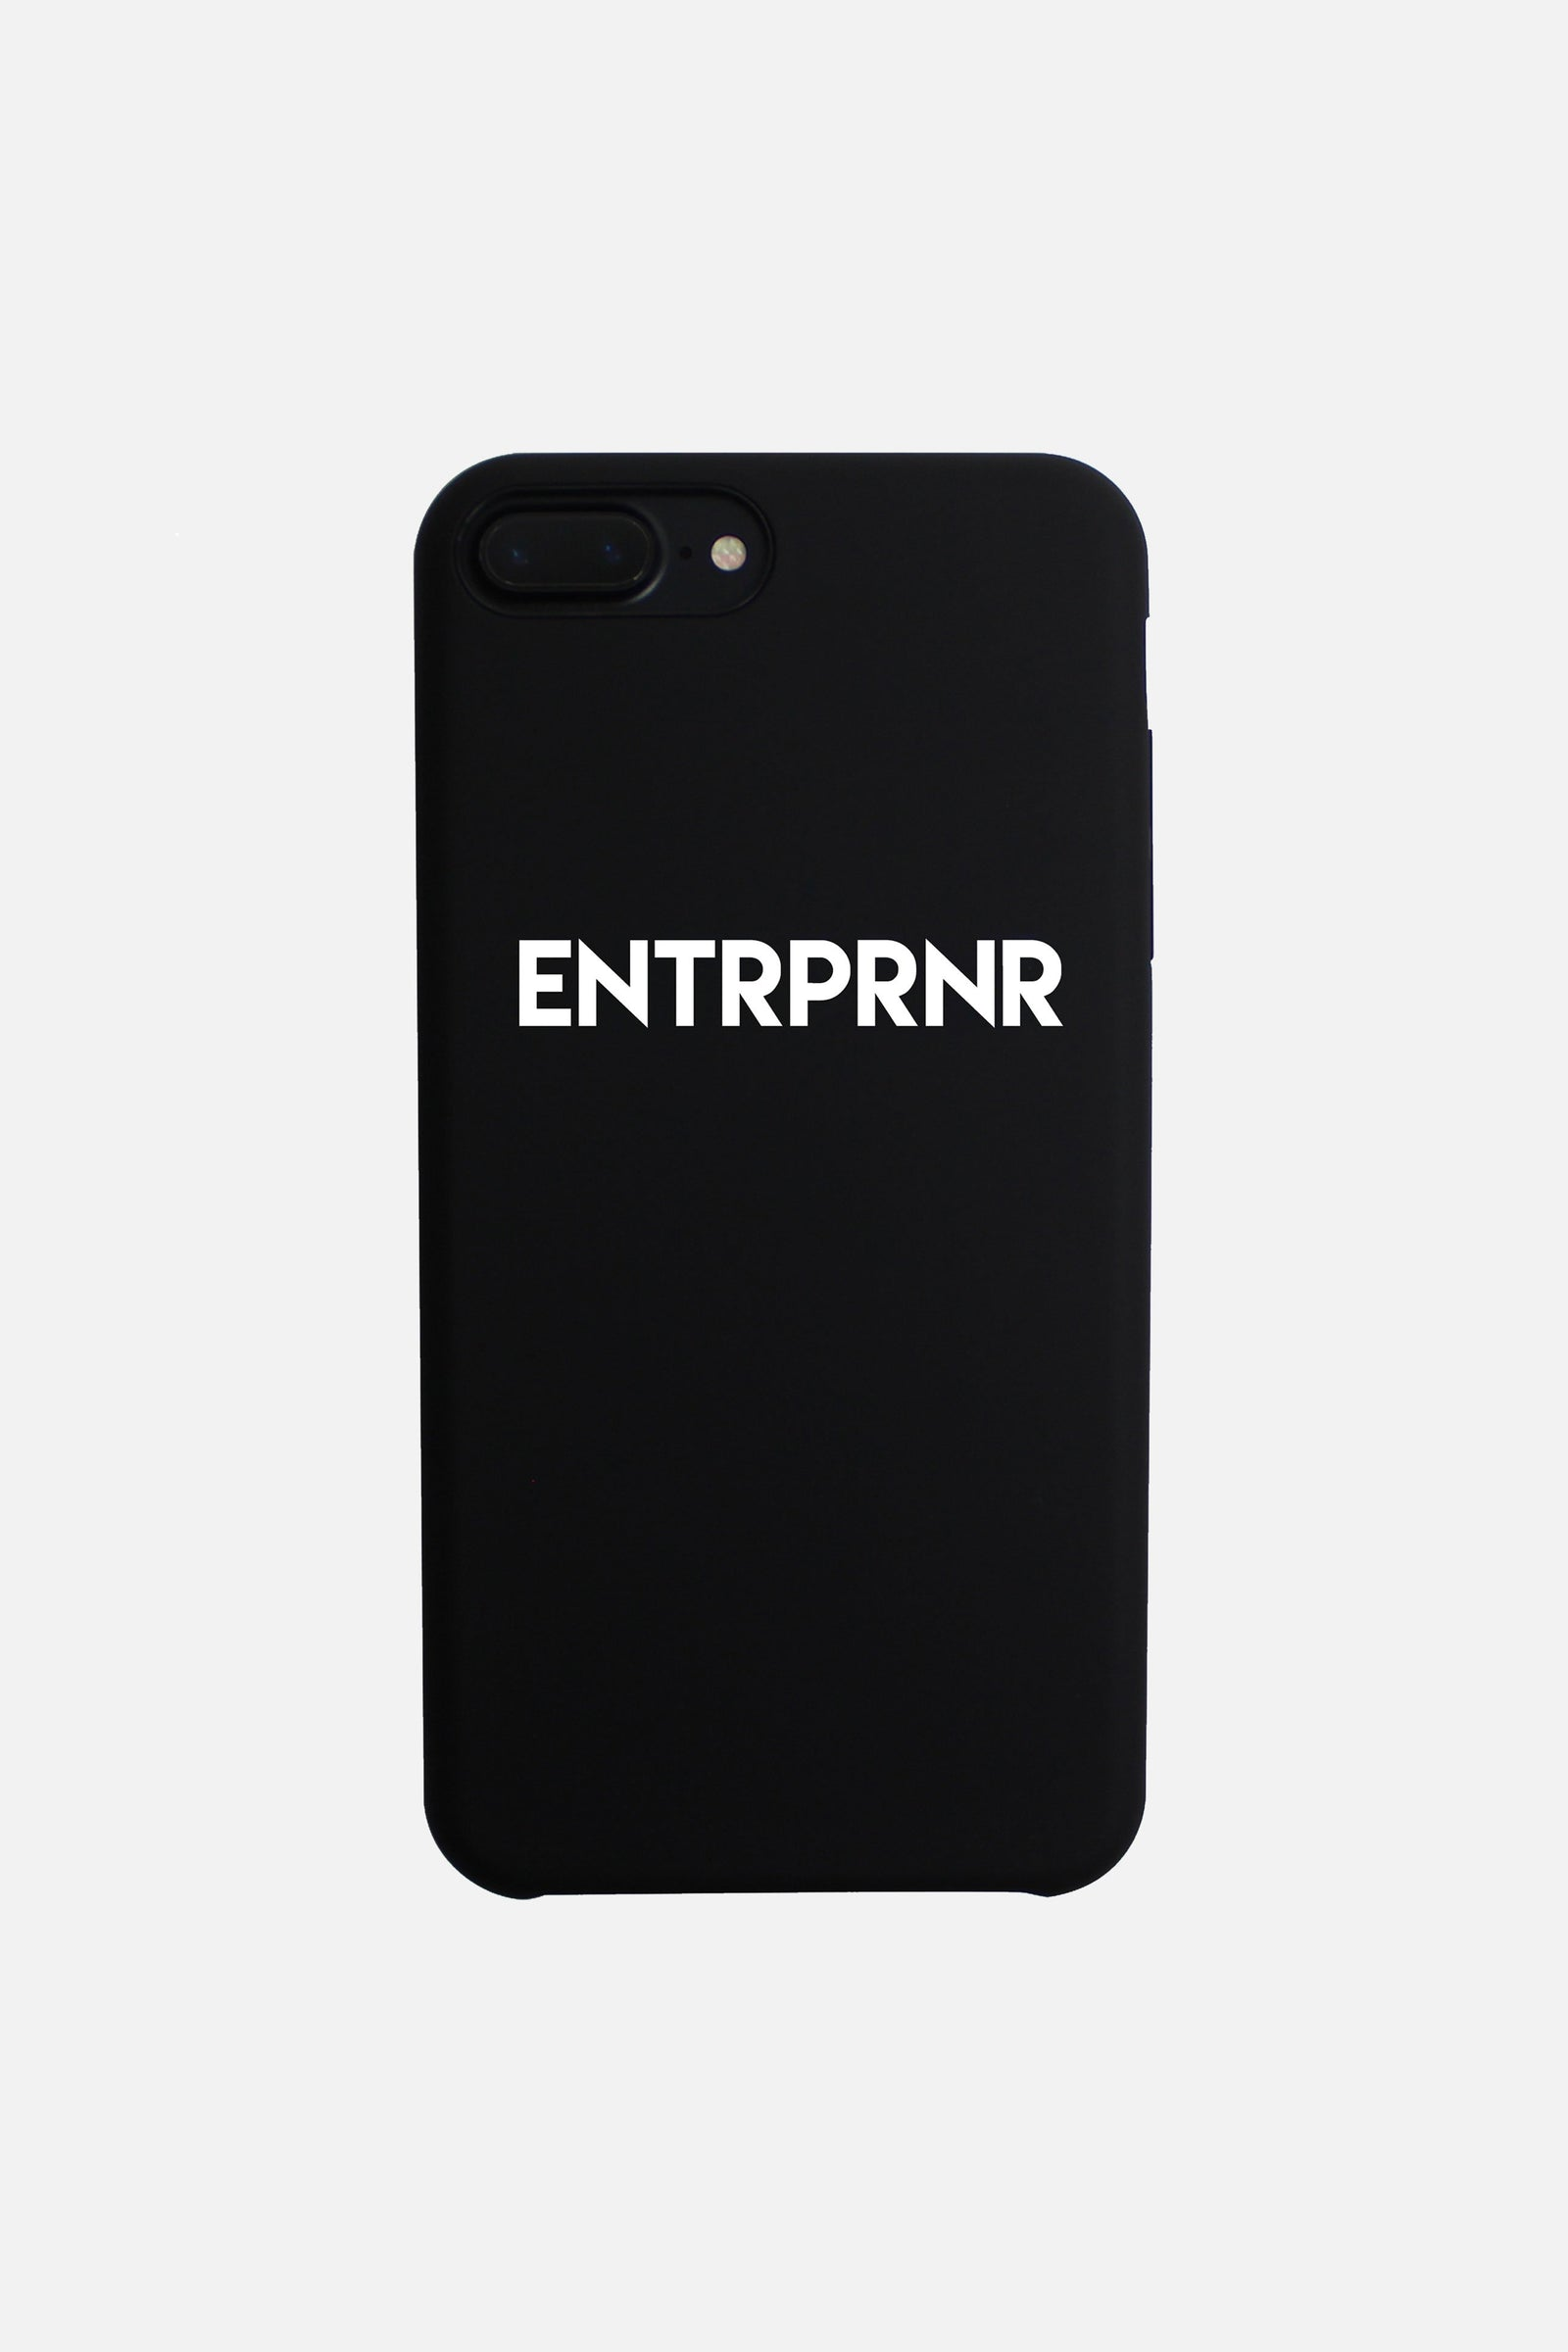 Signature ENTRPRNR iPhone 7+ & 8+ PLUS Case - Black - ENTRPRNR® | The Entrepreneur's Clothing Brand. | Stagnancy is the Enemy. Action is King.